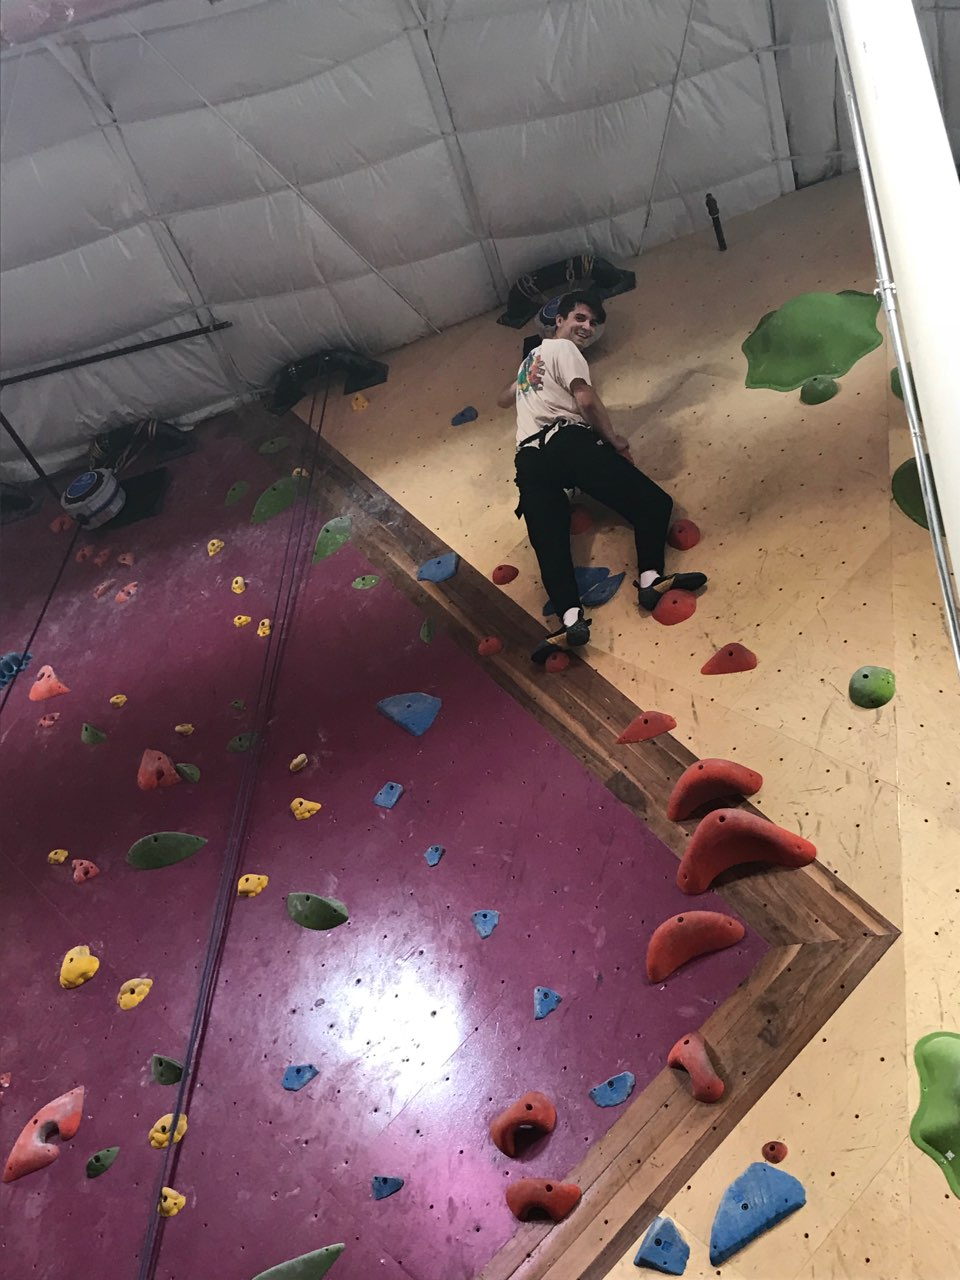 Photo of client indoor rock climbing smiling as he reached the top of the wall